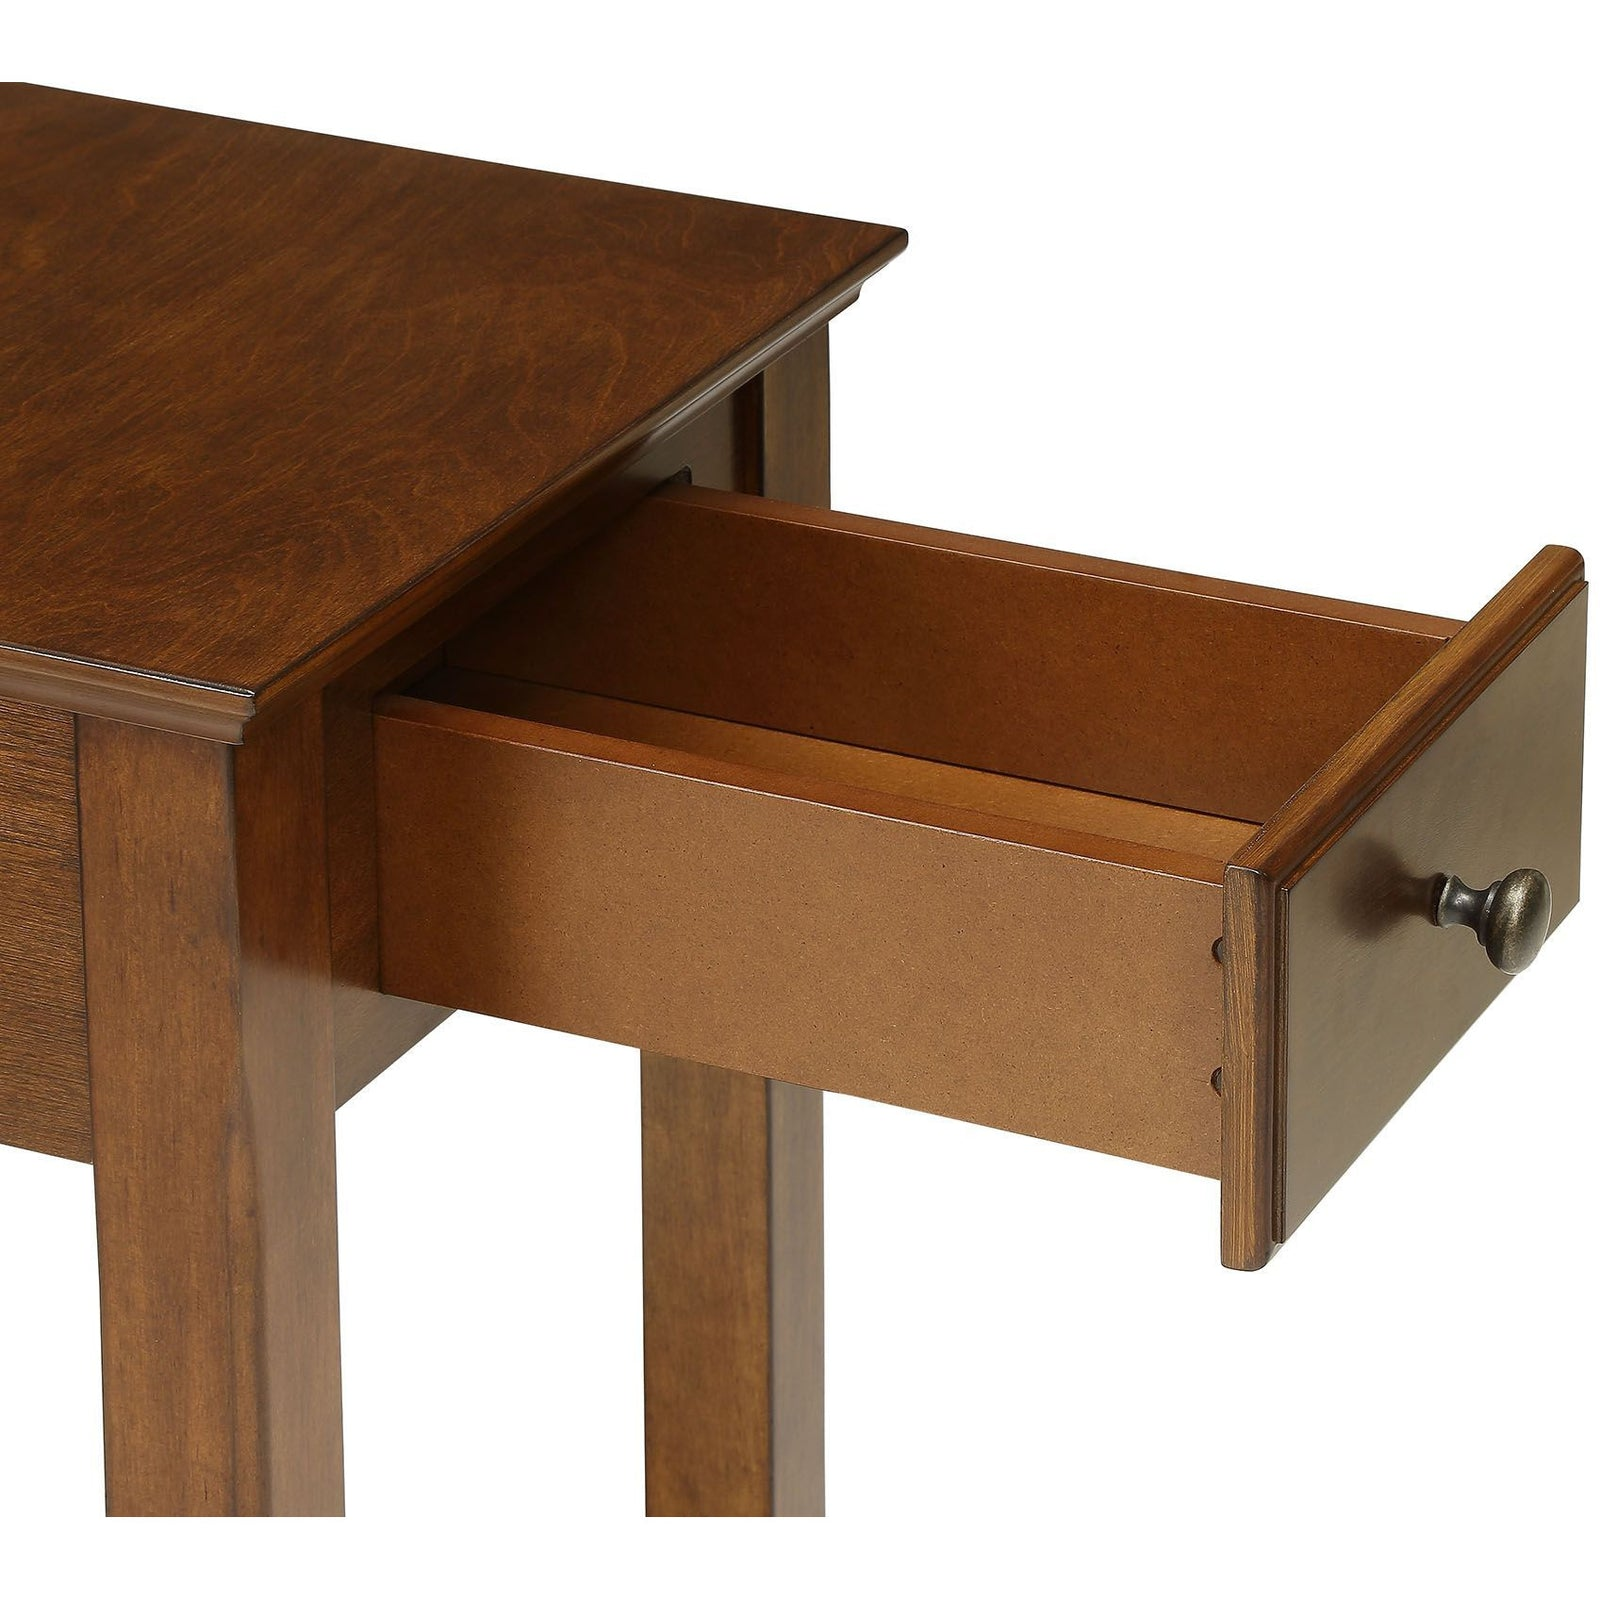 Wooden Tapered Leg Side Table With Bottom Shelf in Walnut - Drawer